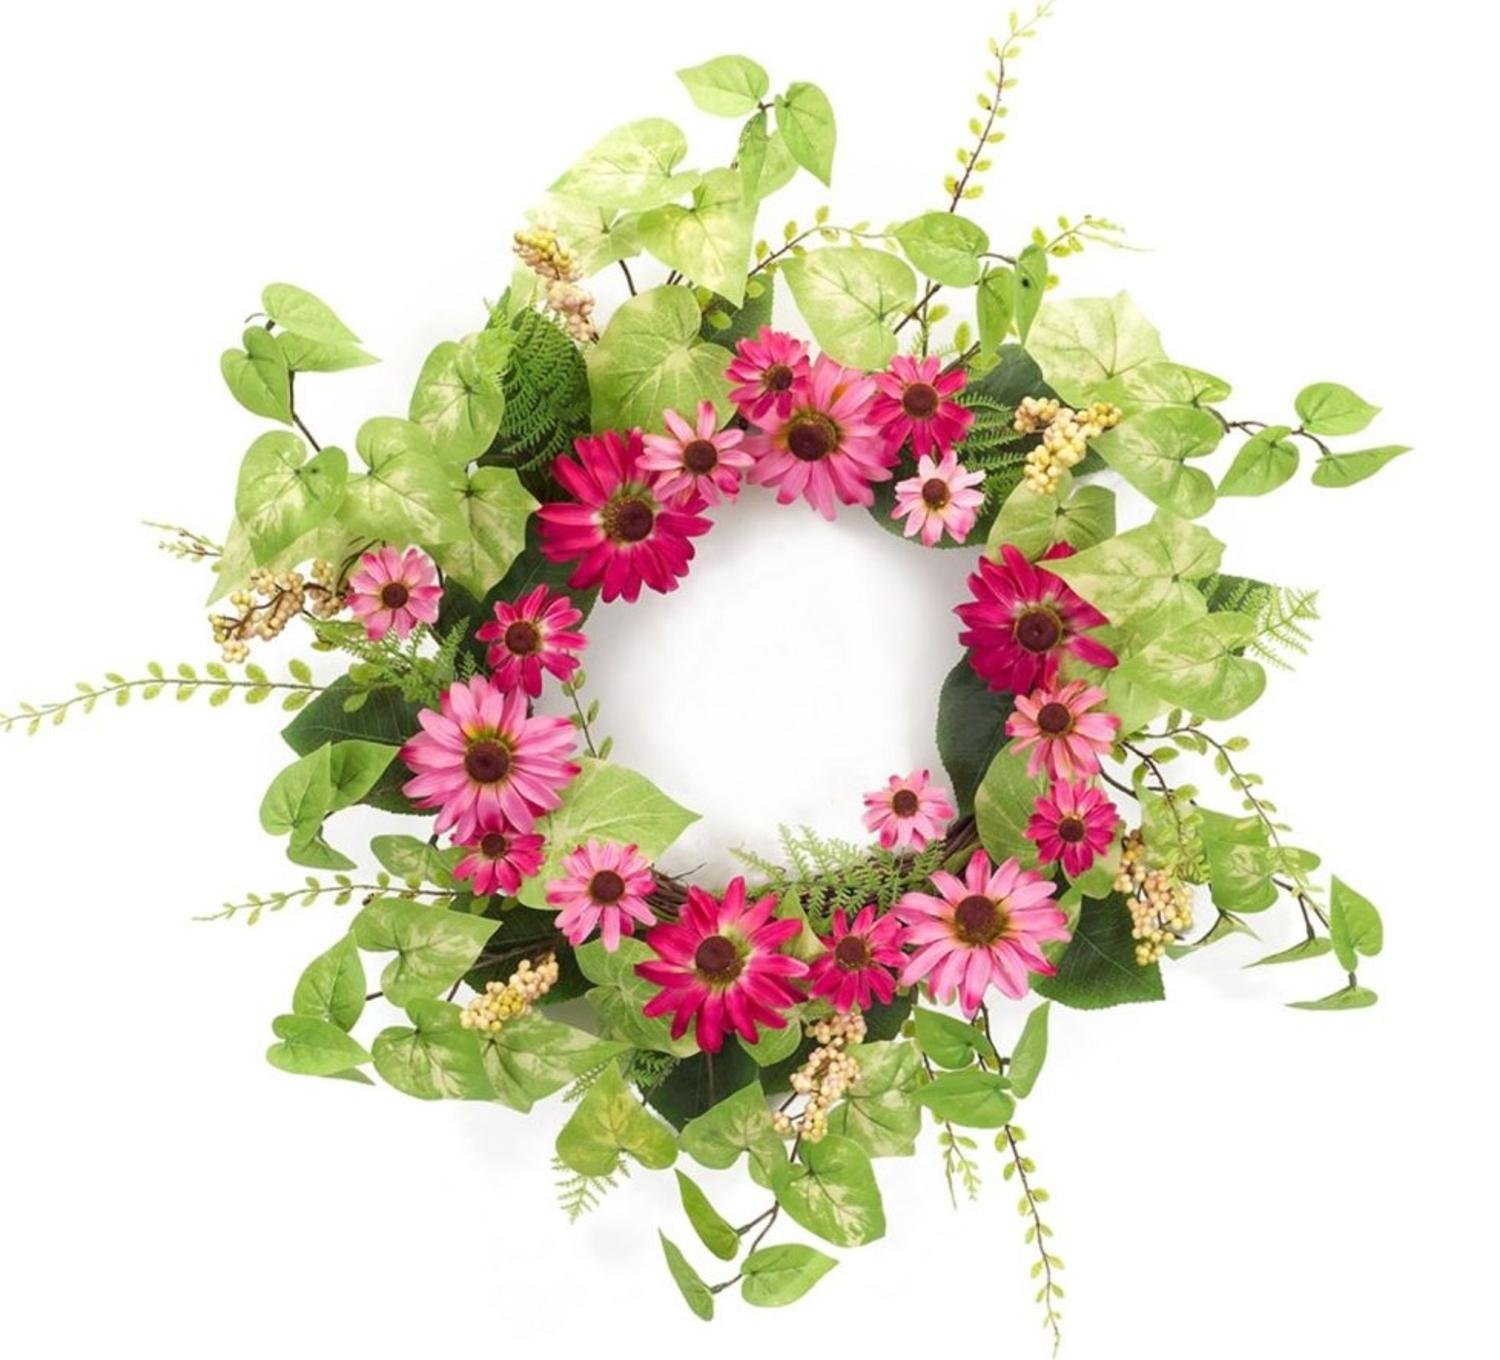 Pack of 2 Decorative Springtime Bright Black Eyed Susan Wreath by Melrose (Image #1)